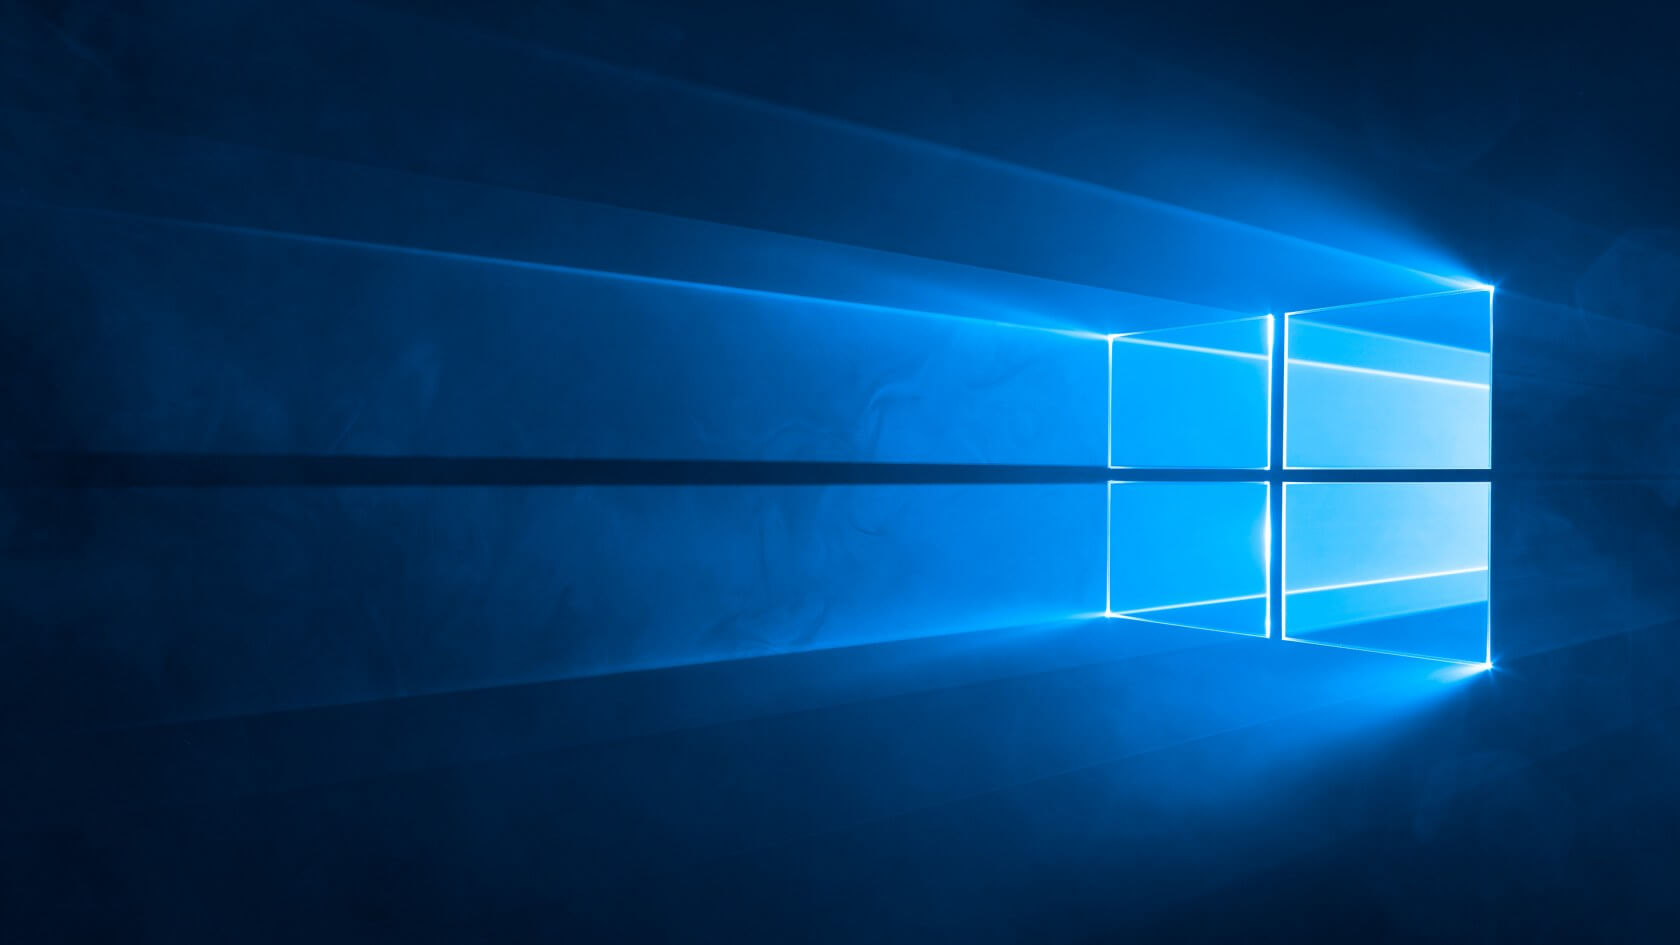 Upcoming Windows 10 feature promises to optimize a device based on its use case